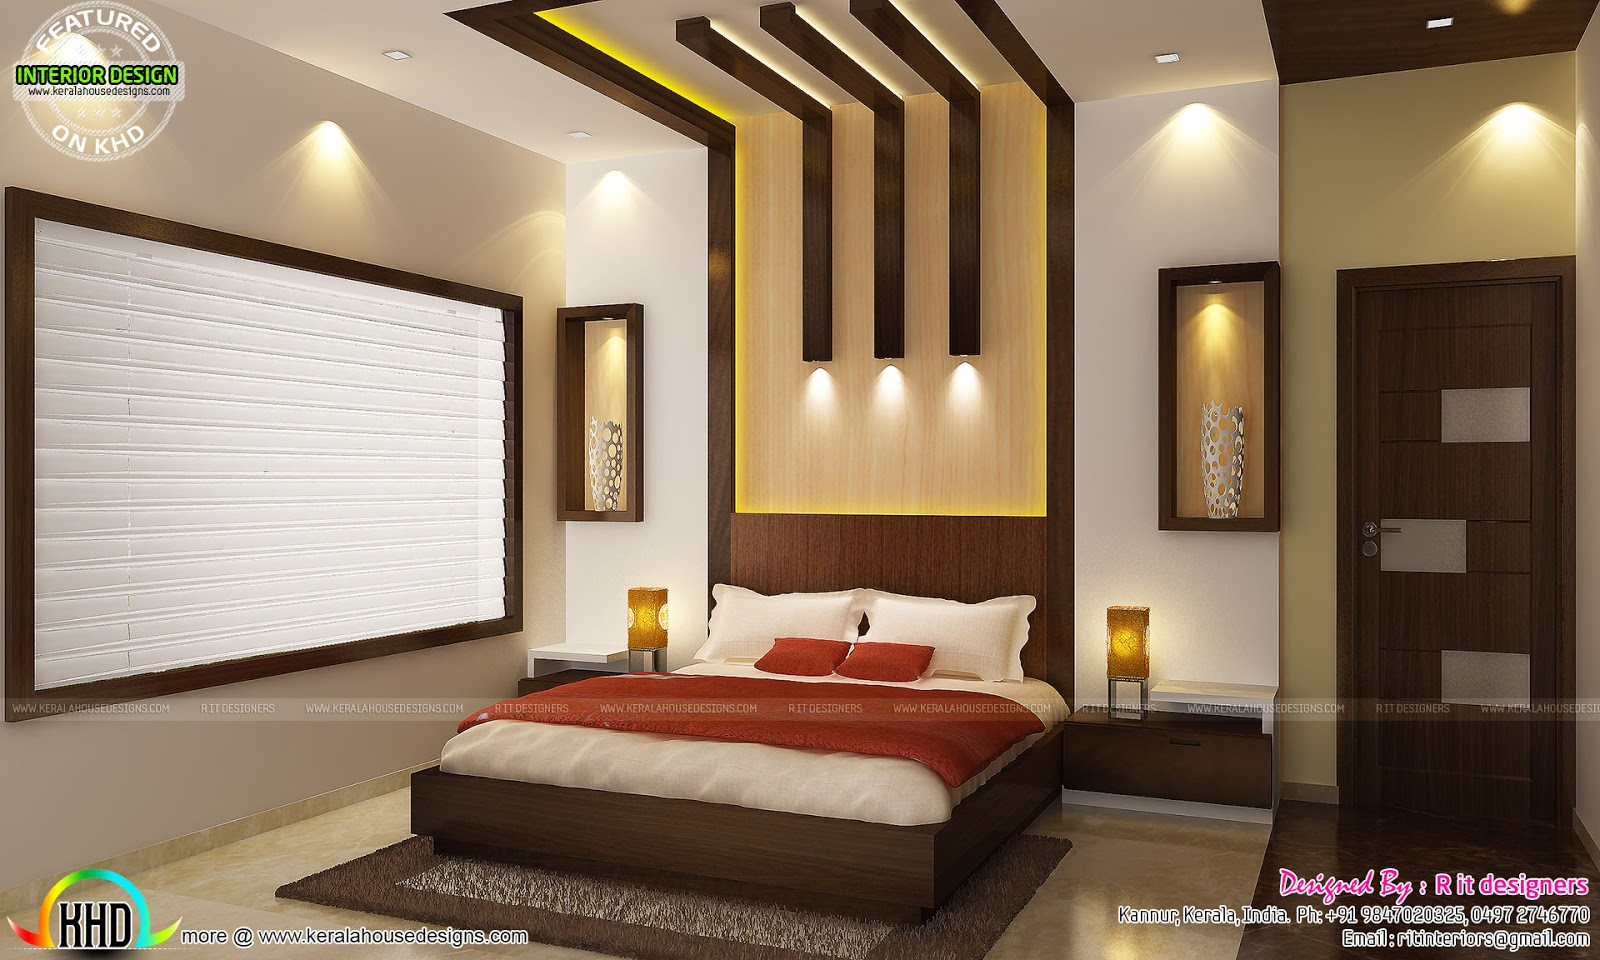 Kitchen living bedroom dining interior decor kerala Bedroom with kitchen design